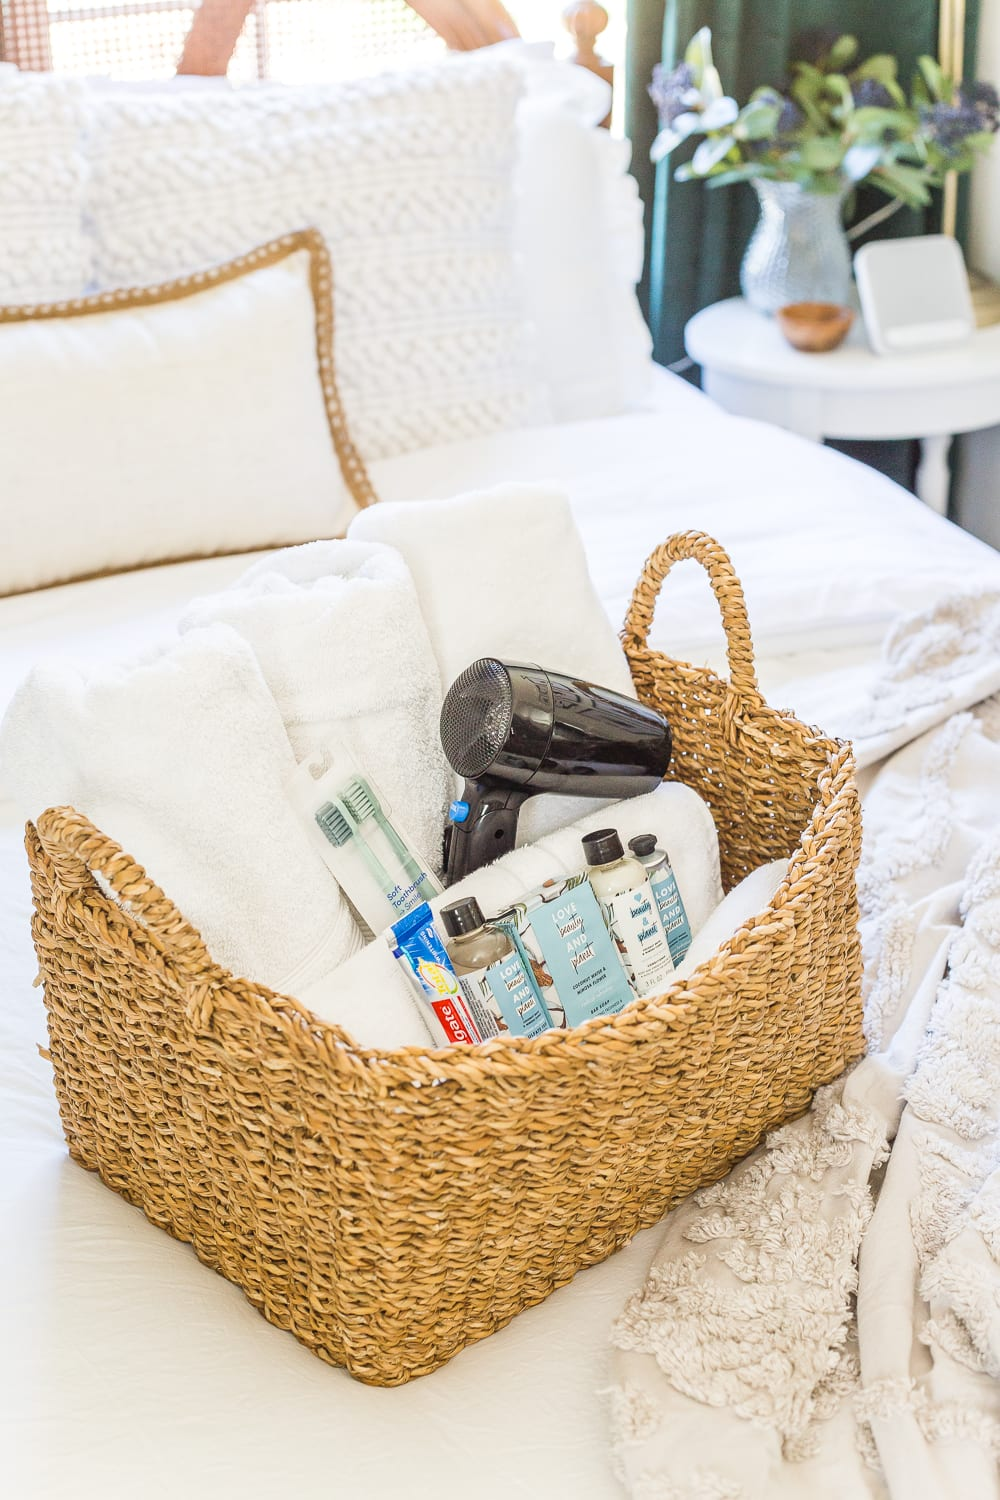 38 Guest Bedroom Essentials | Have a basket with extra towels and extra toiletries in case guests forget any.